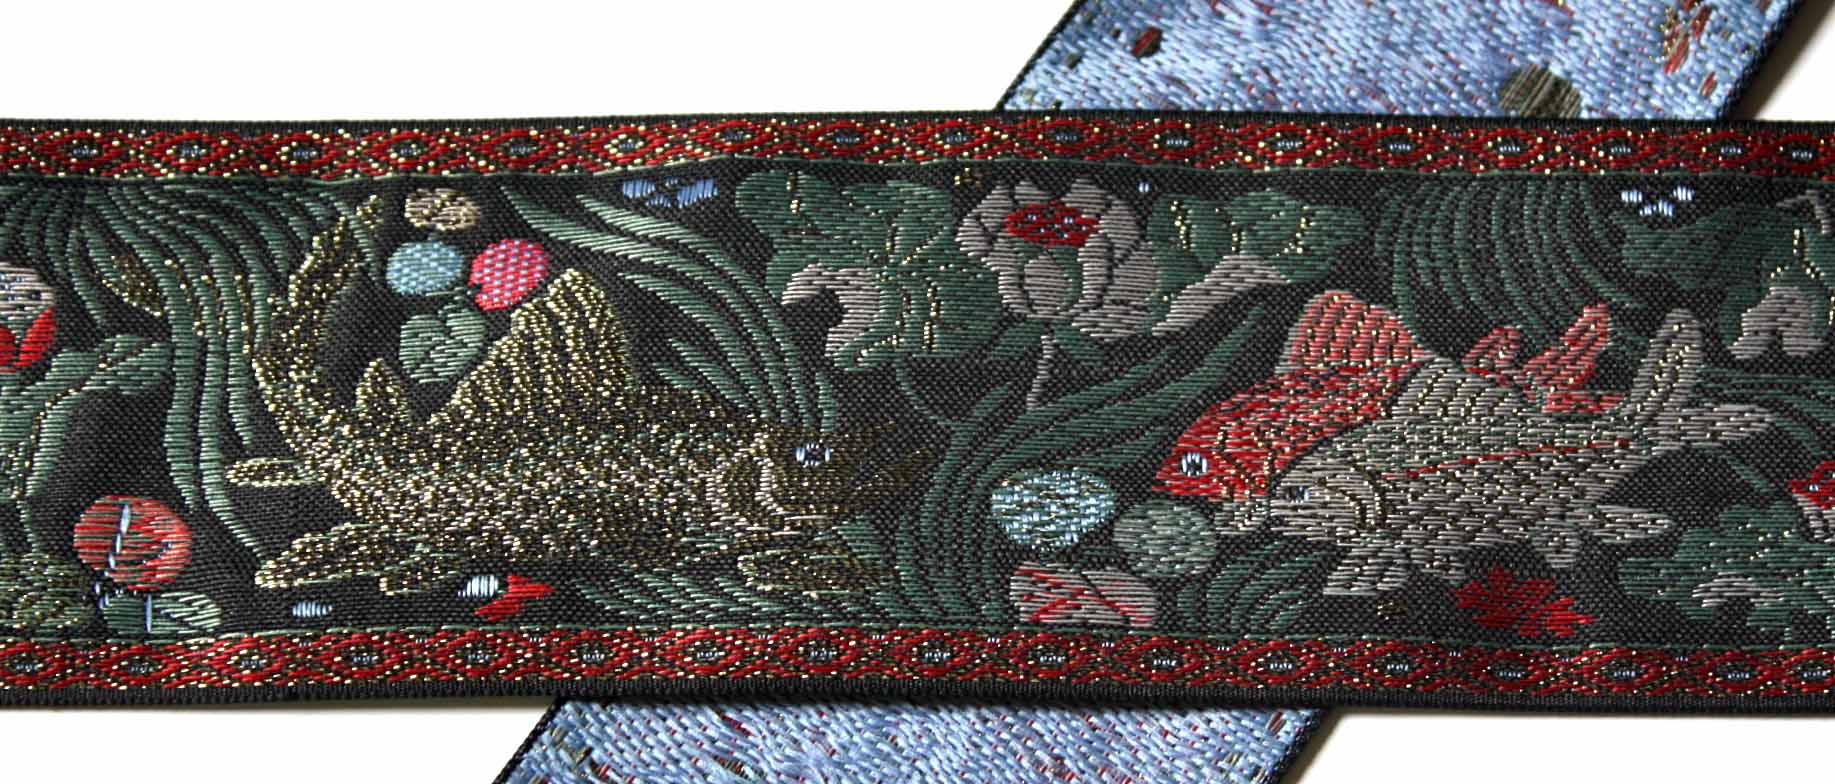 "Asian Koi Woven Jacquard 2"" x 1 y Antique Gold, Silver Red etc."